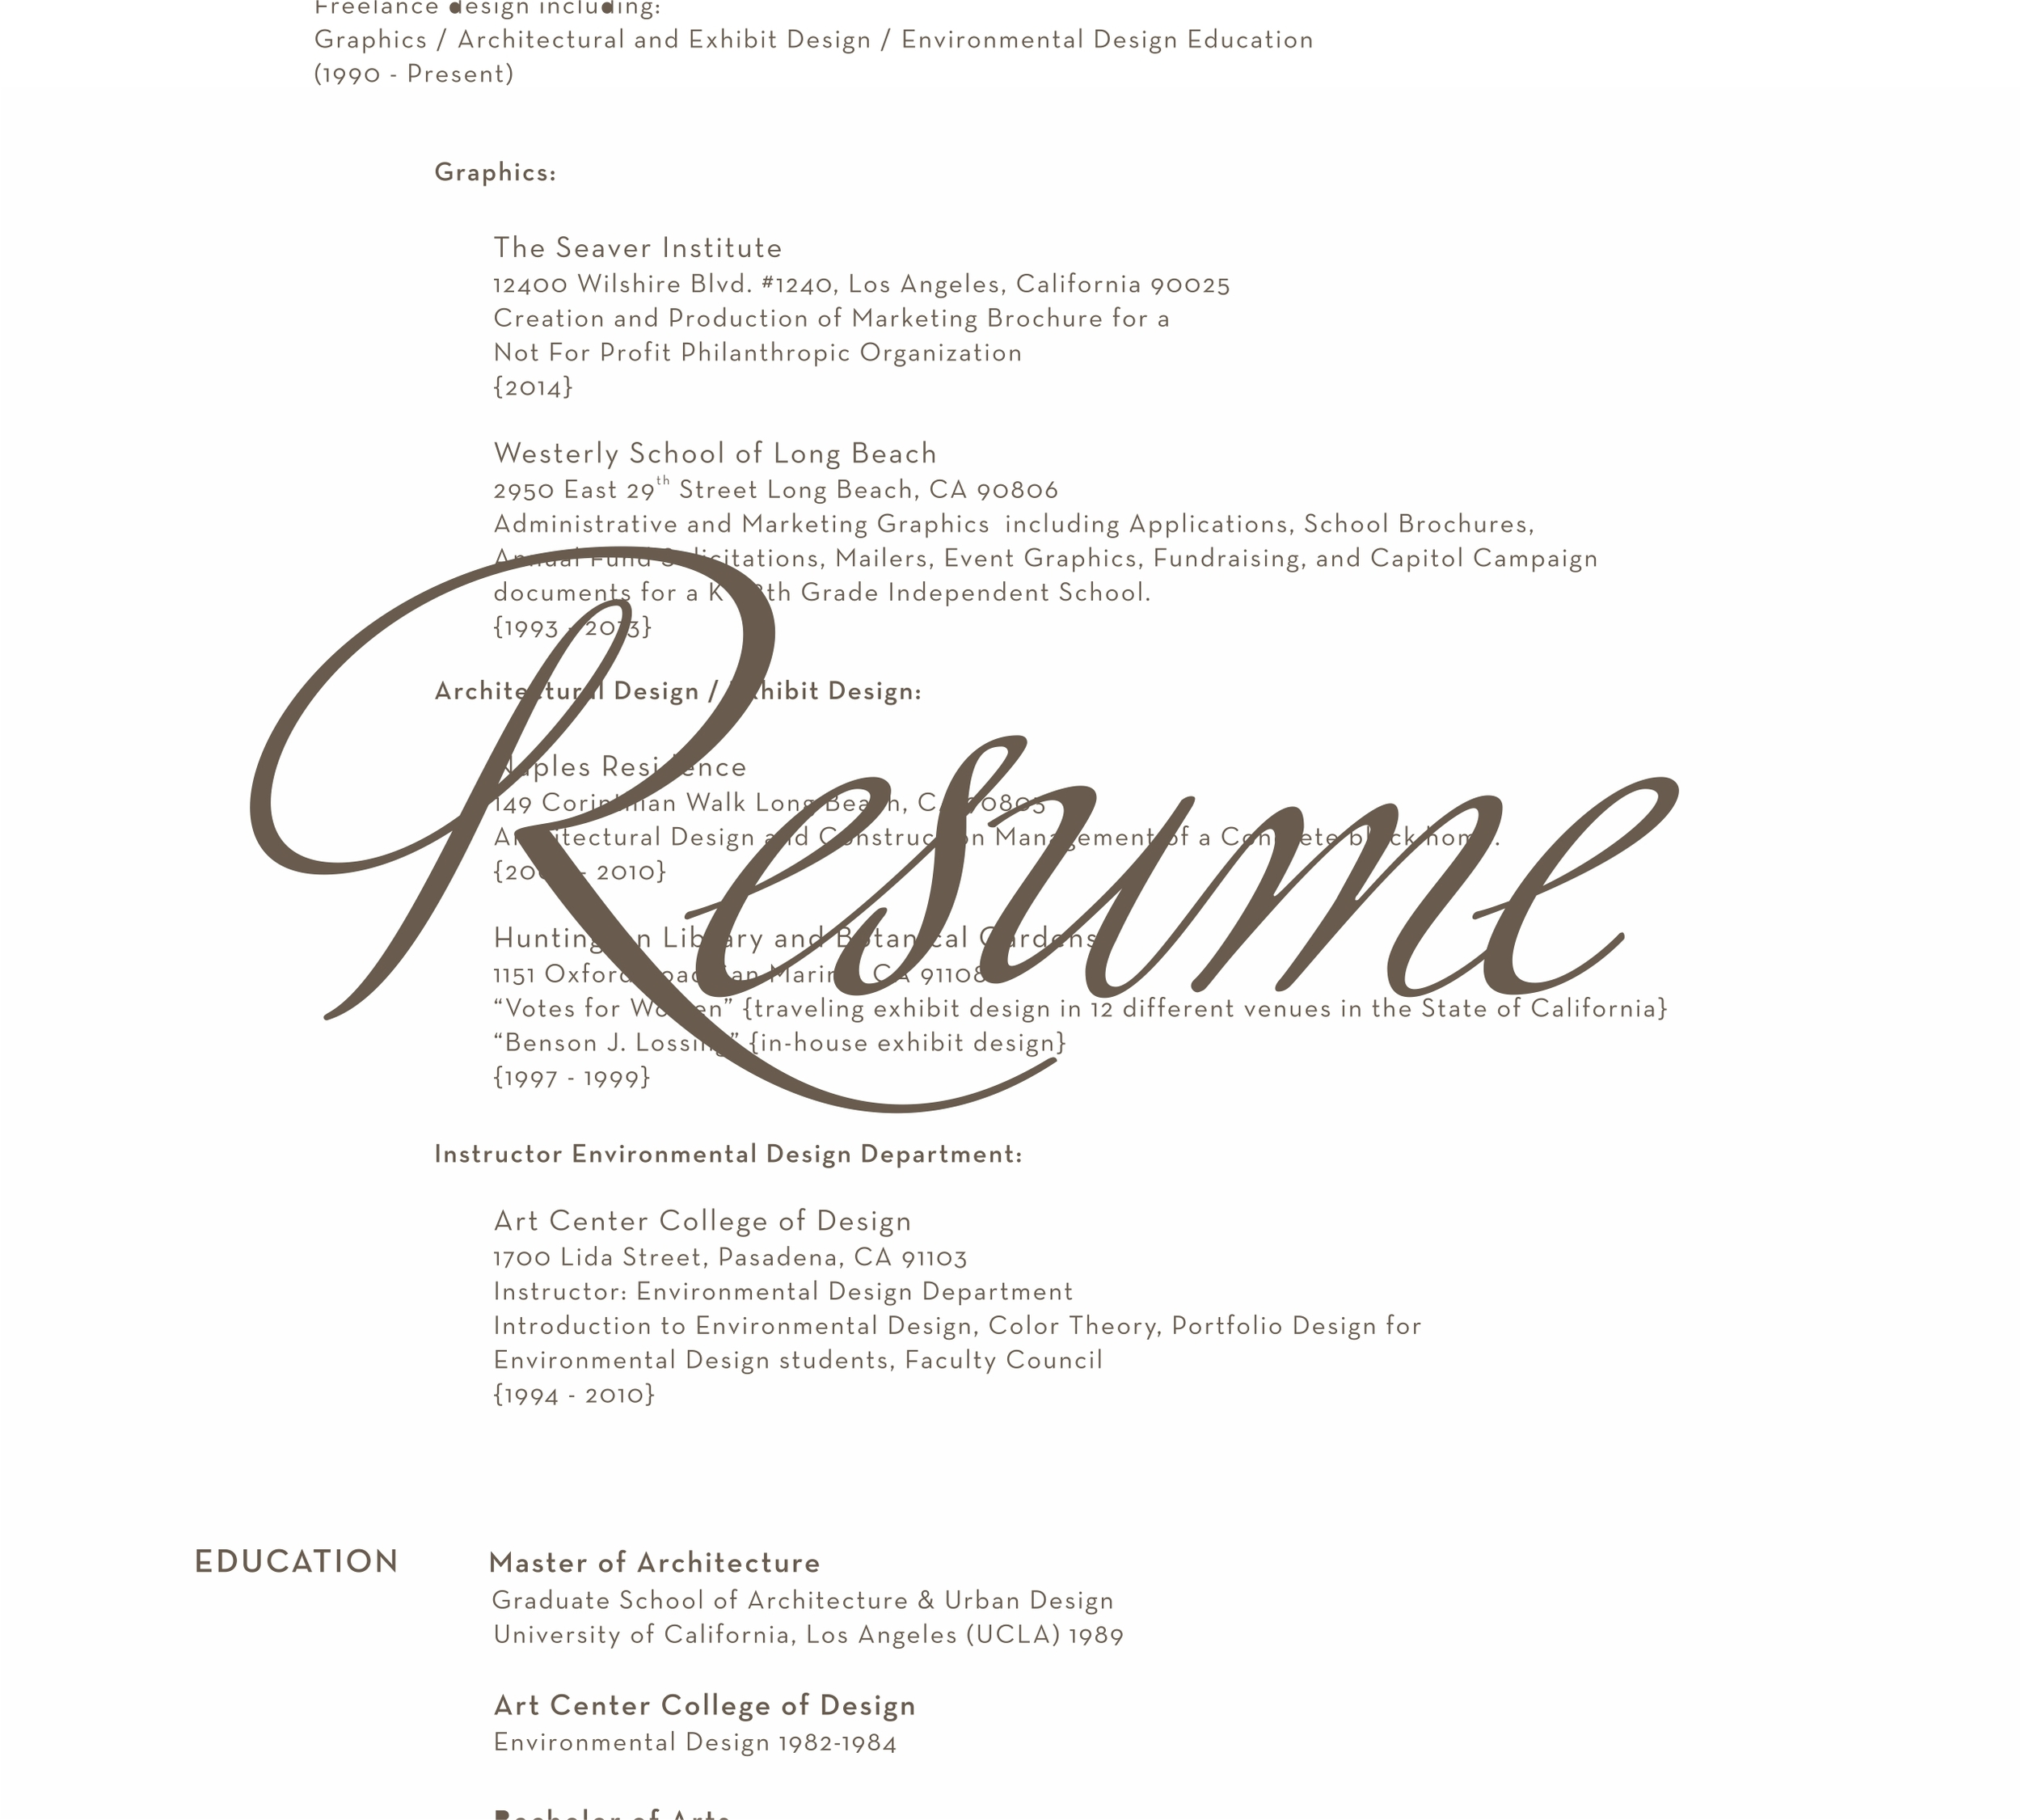 About Resume Footer.jpg